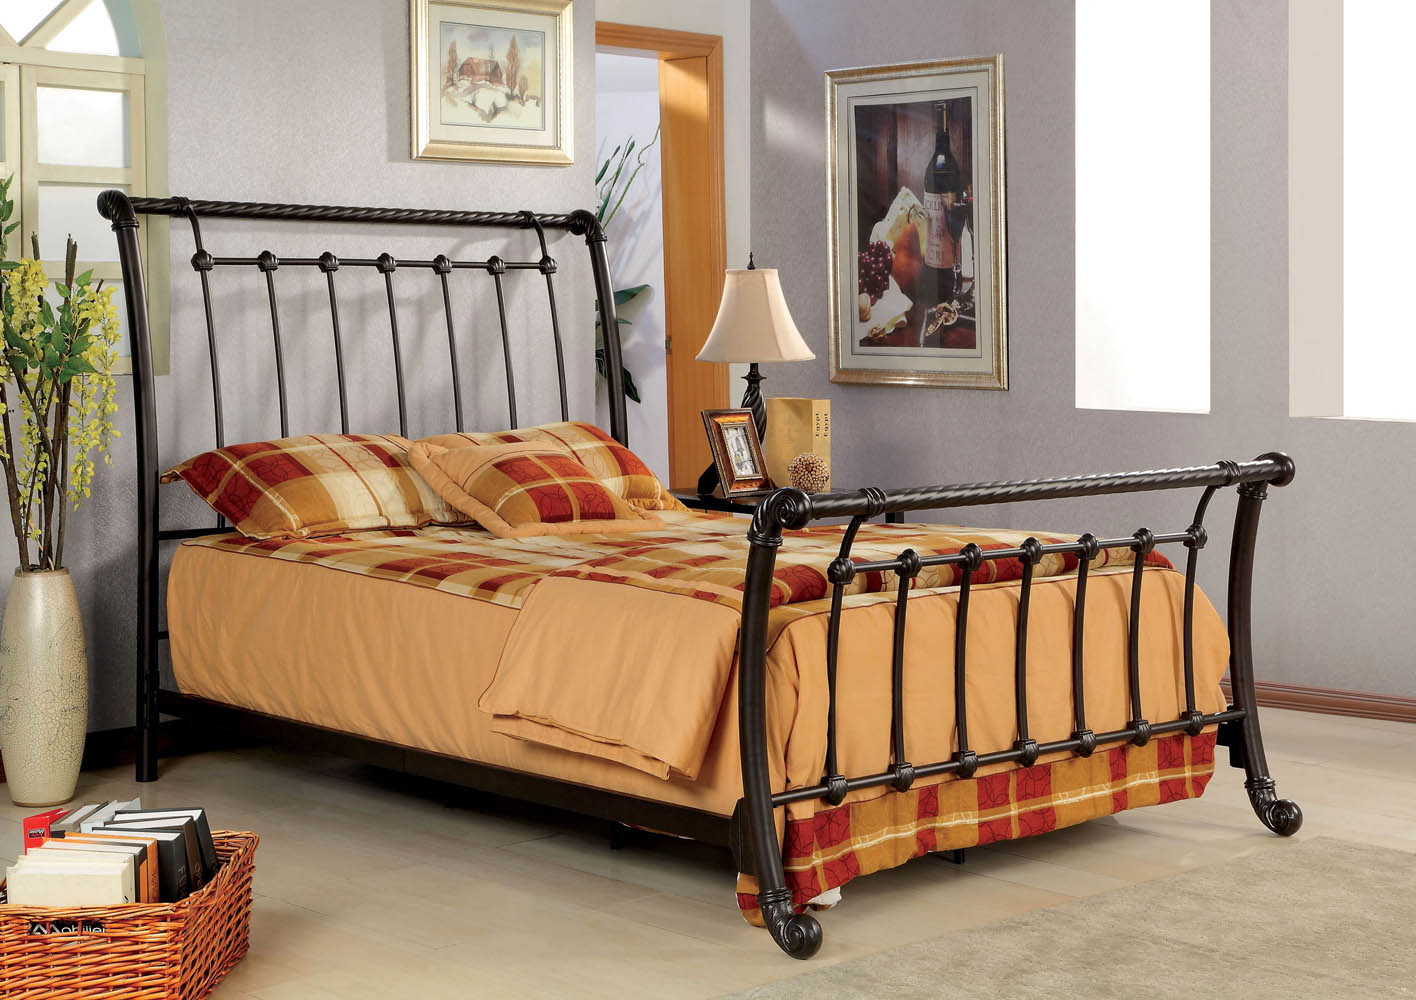 Full lourdes metal bed frame - Bed frames for small rooms ...